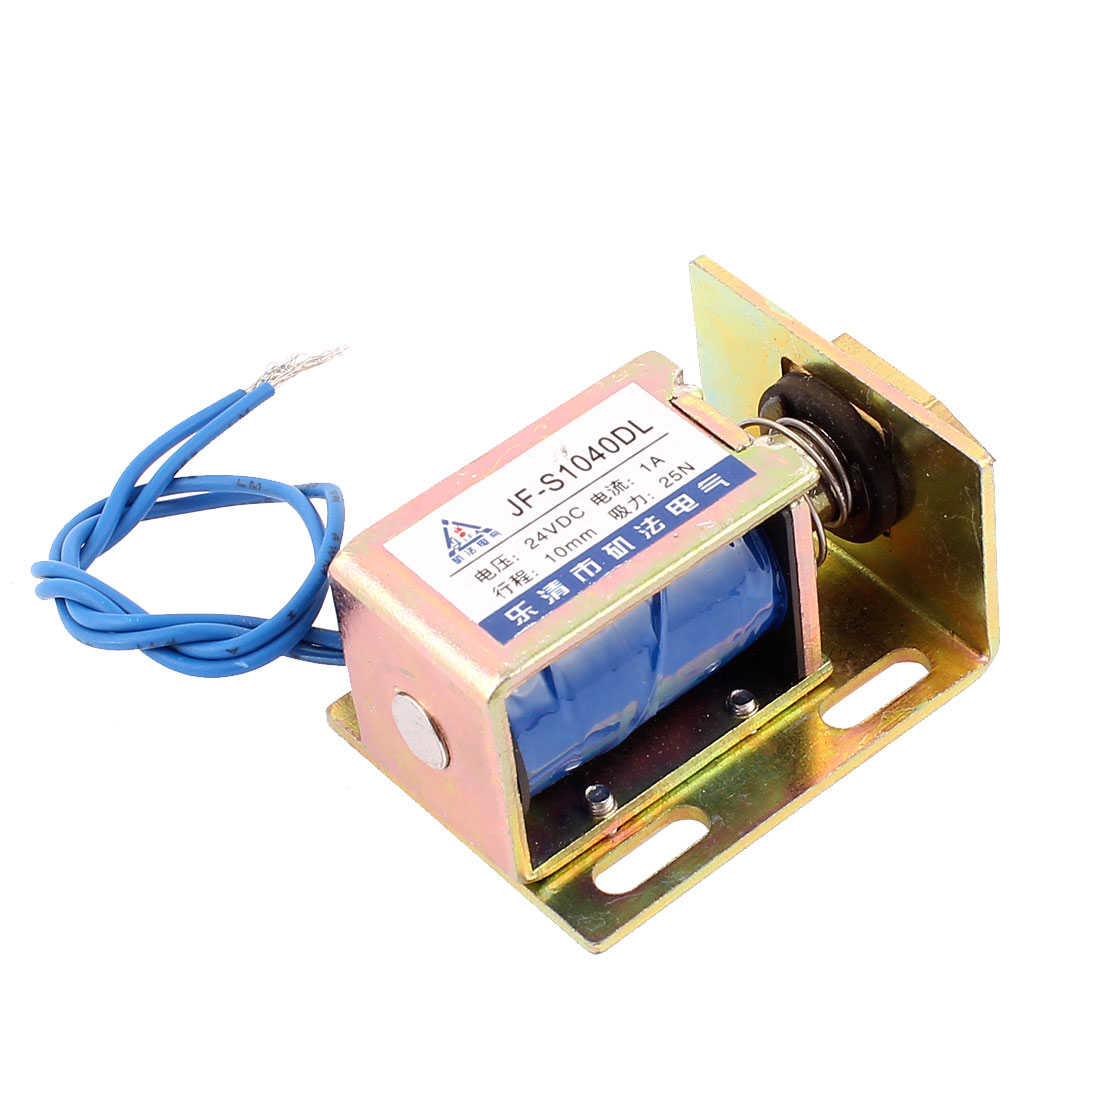 UXCELL Jf-S1040dl  24V 1A 25N Force Energy Saving Tractive Solenoid Electromagnet<br>